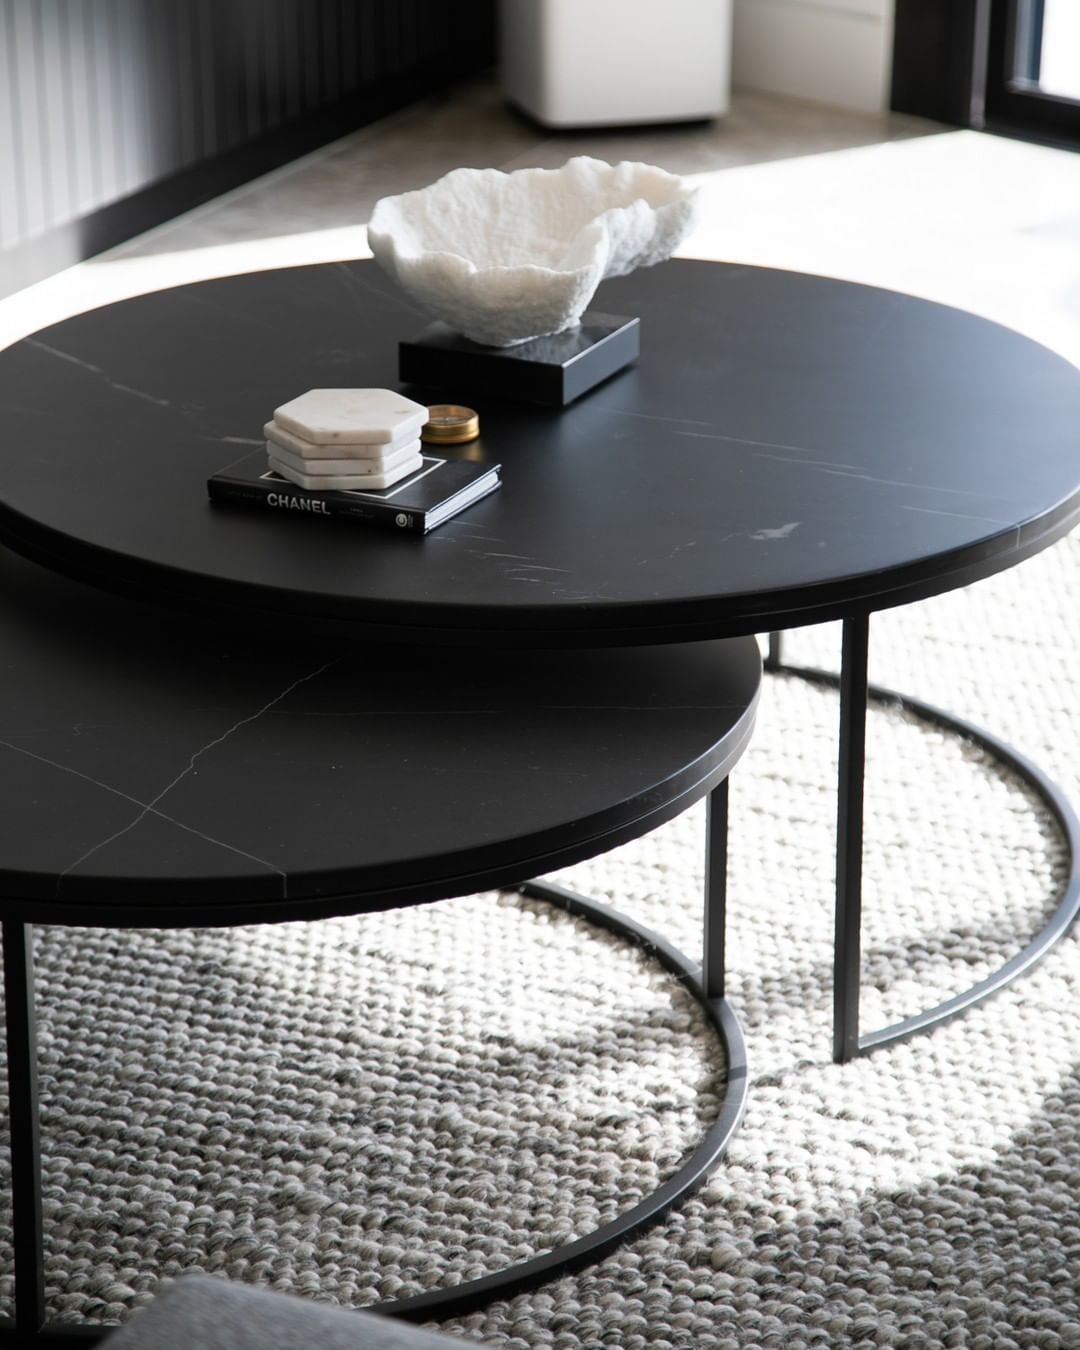 Globewest On Instagram Accent Your Space With The Elle Round Marble Nest Coffee Tables A Beautiful Set Ide Marble Round Coffee Table Coffee Table Furniture [ 1350 x 1080 Pixel ]